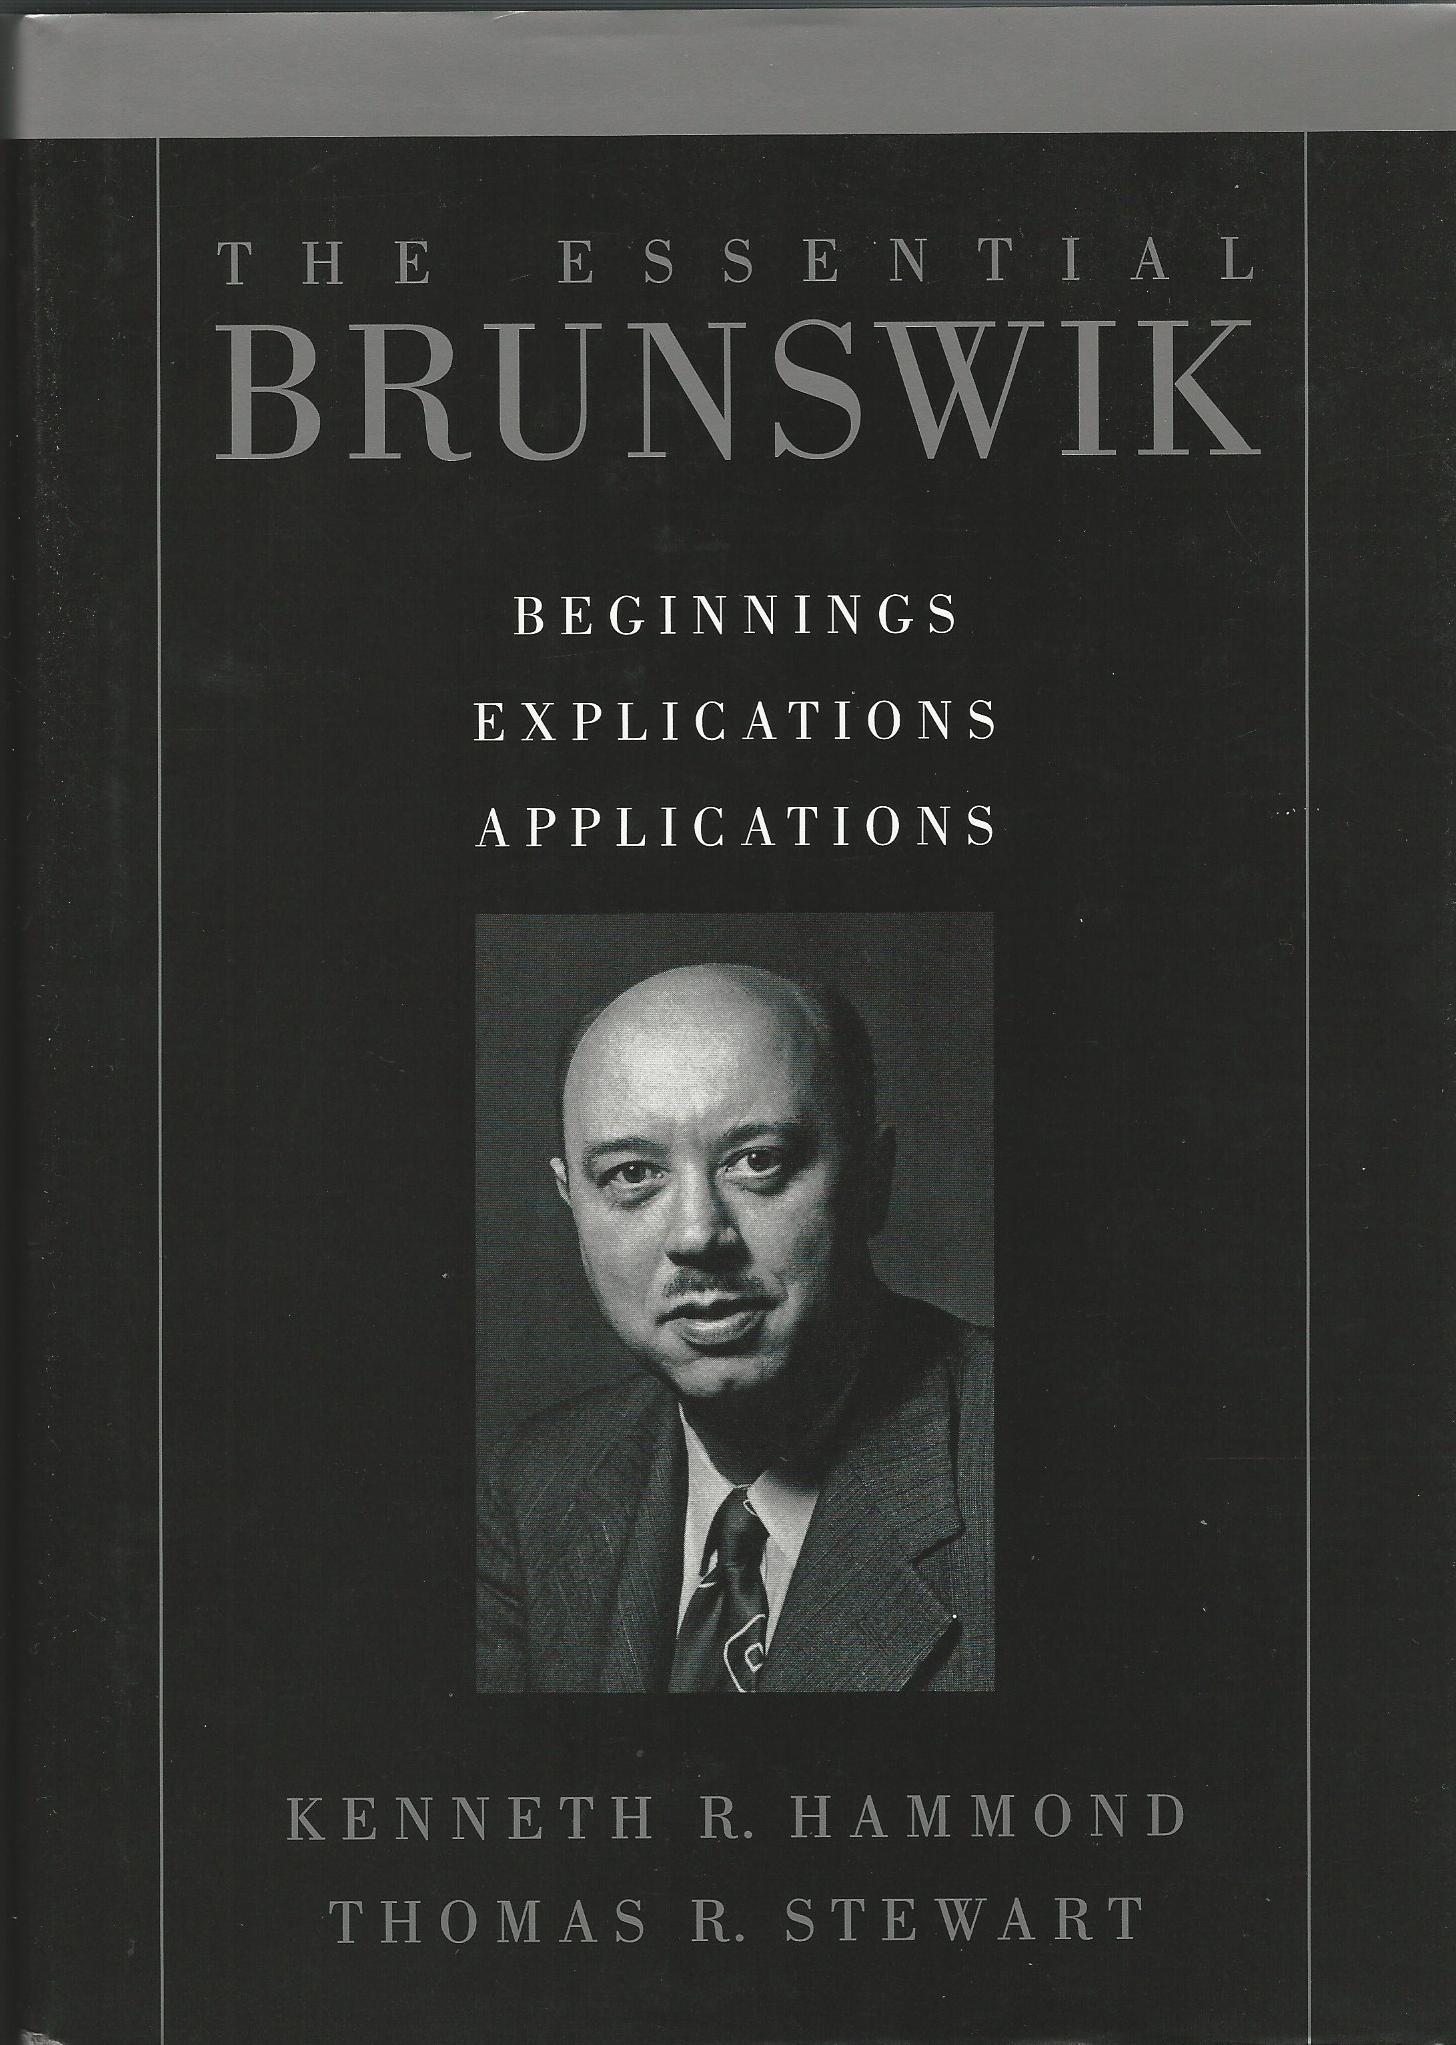 Image for The Essential Brunswik: Beginnings, Explications, Applications